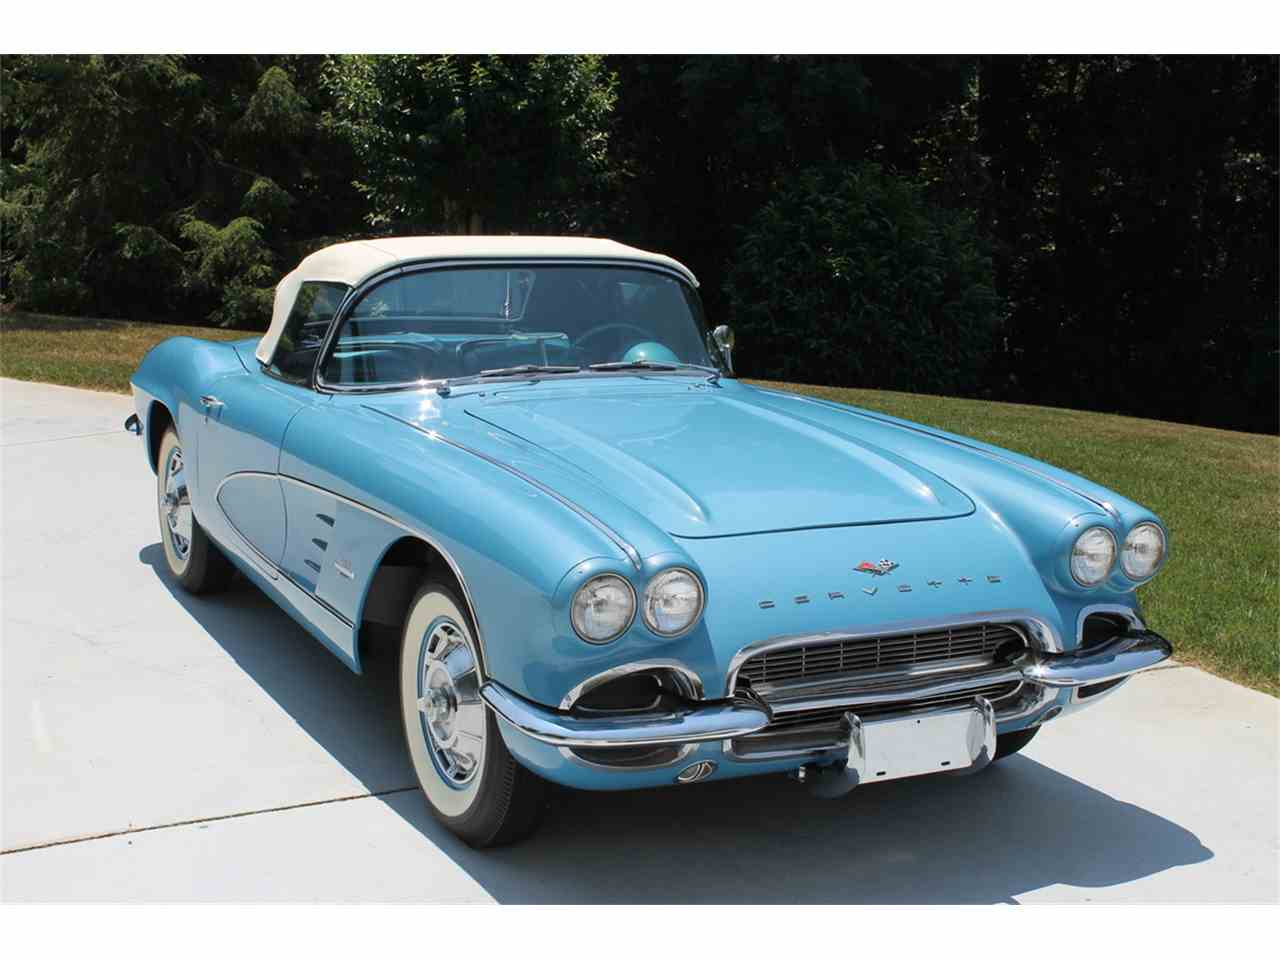 Large Picture of '61 Corvette located in Chattanooga Tennessee - $89,900.00 - MEGZ